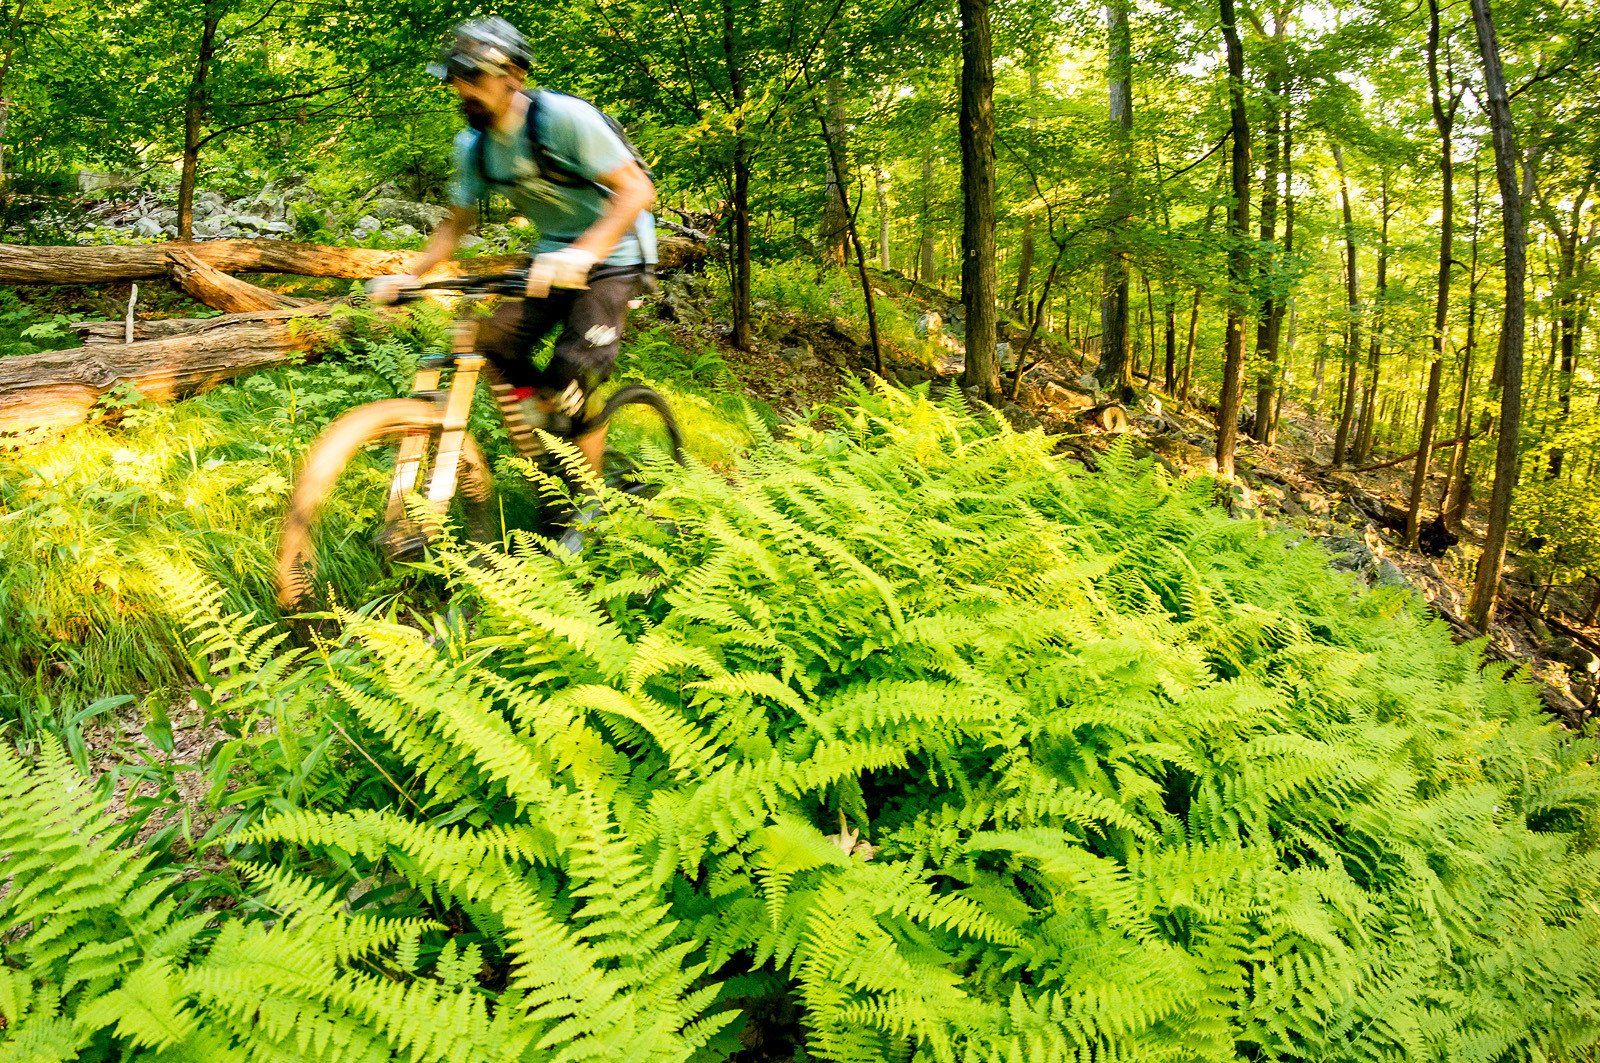 Ferns - jparker - Mountain Biking Pictures - Vital MTB